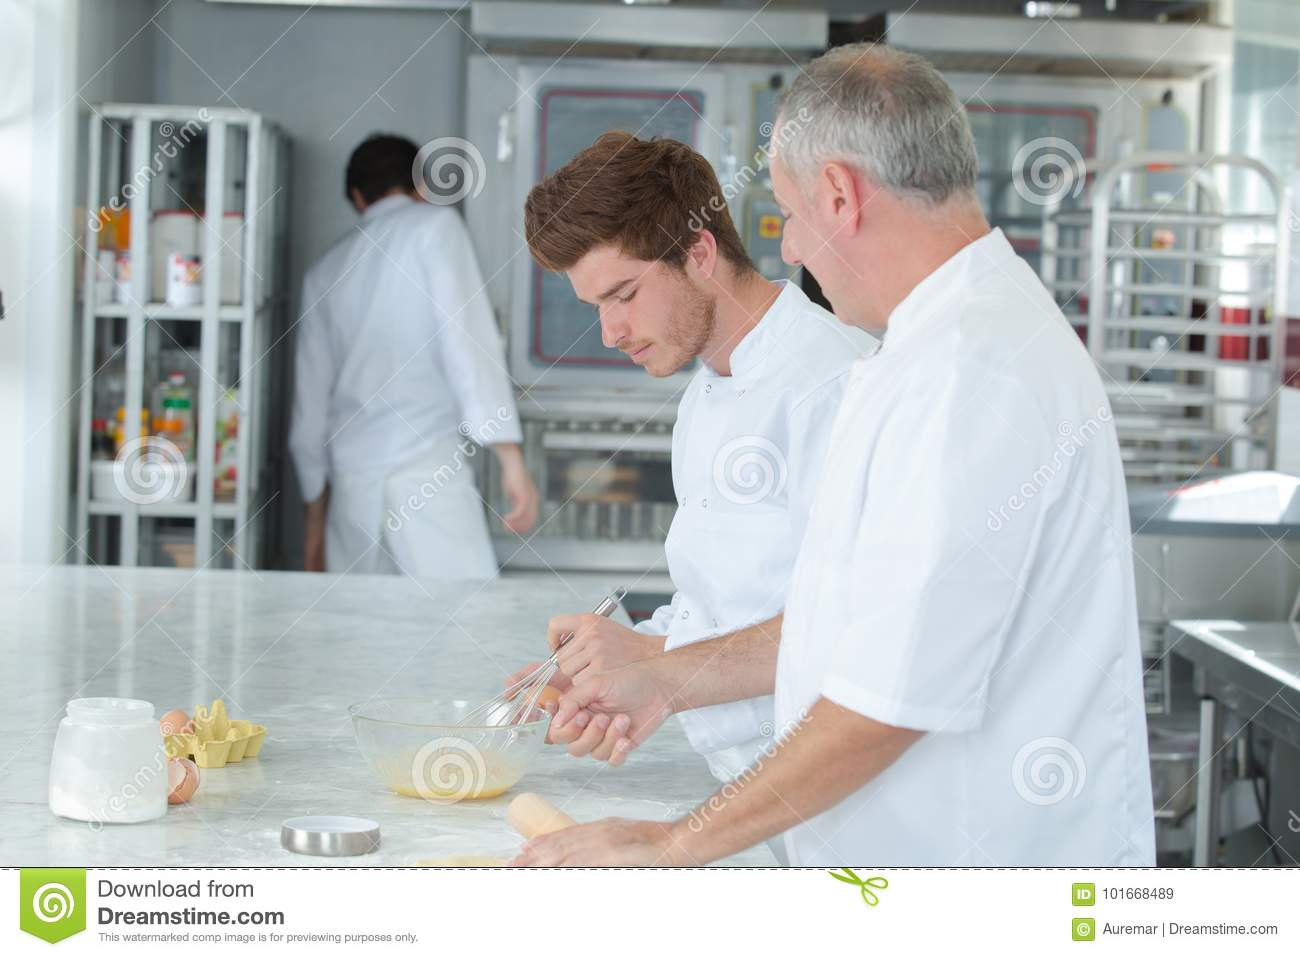 Chef teaching trainee how to become pastry chef